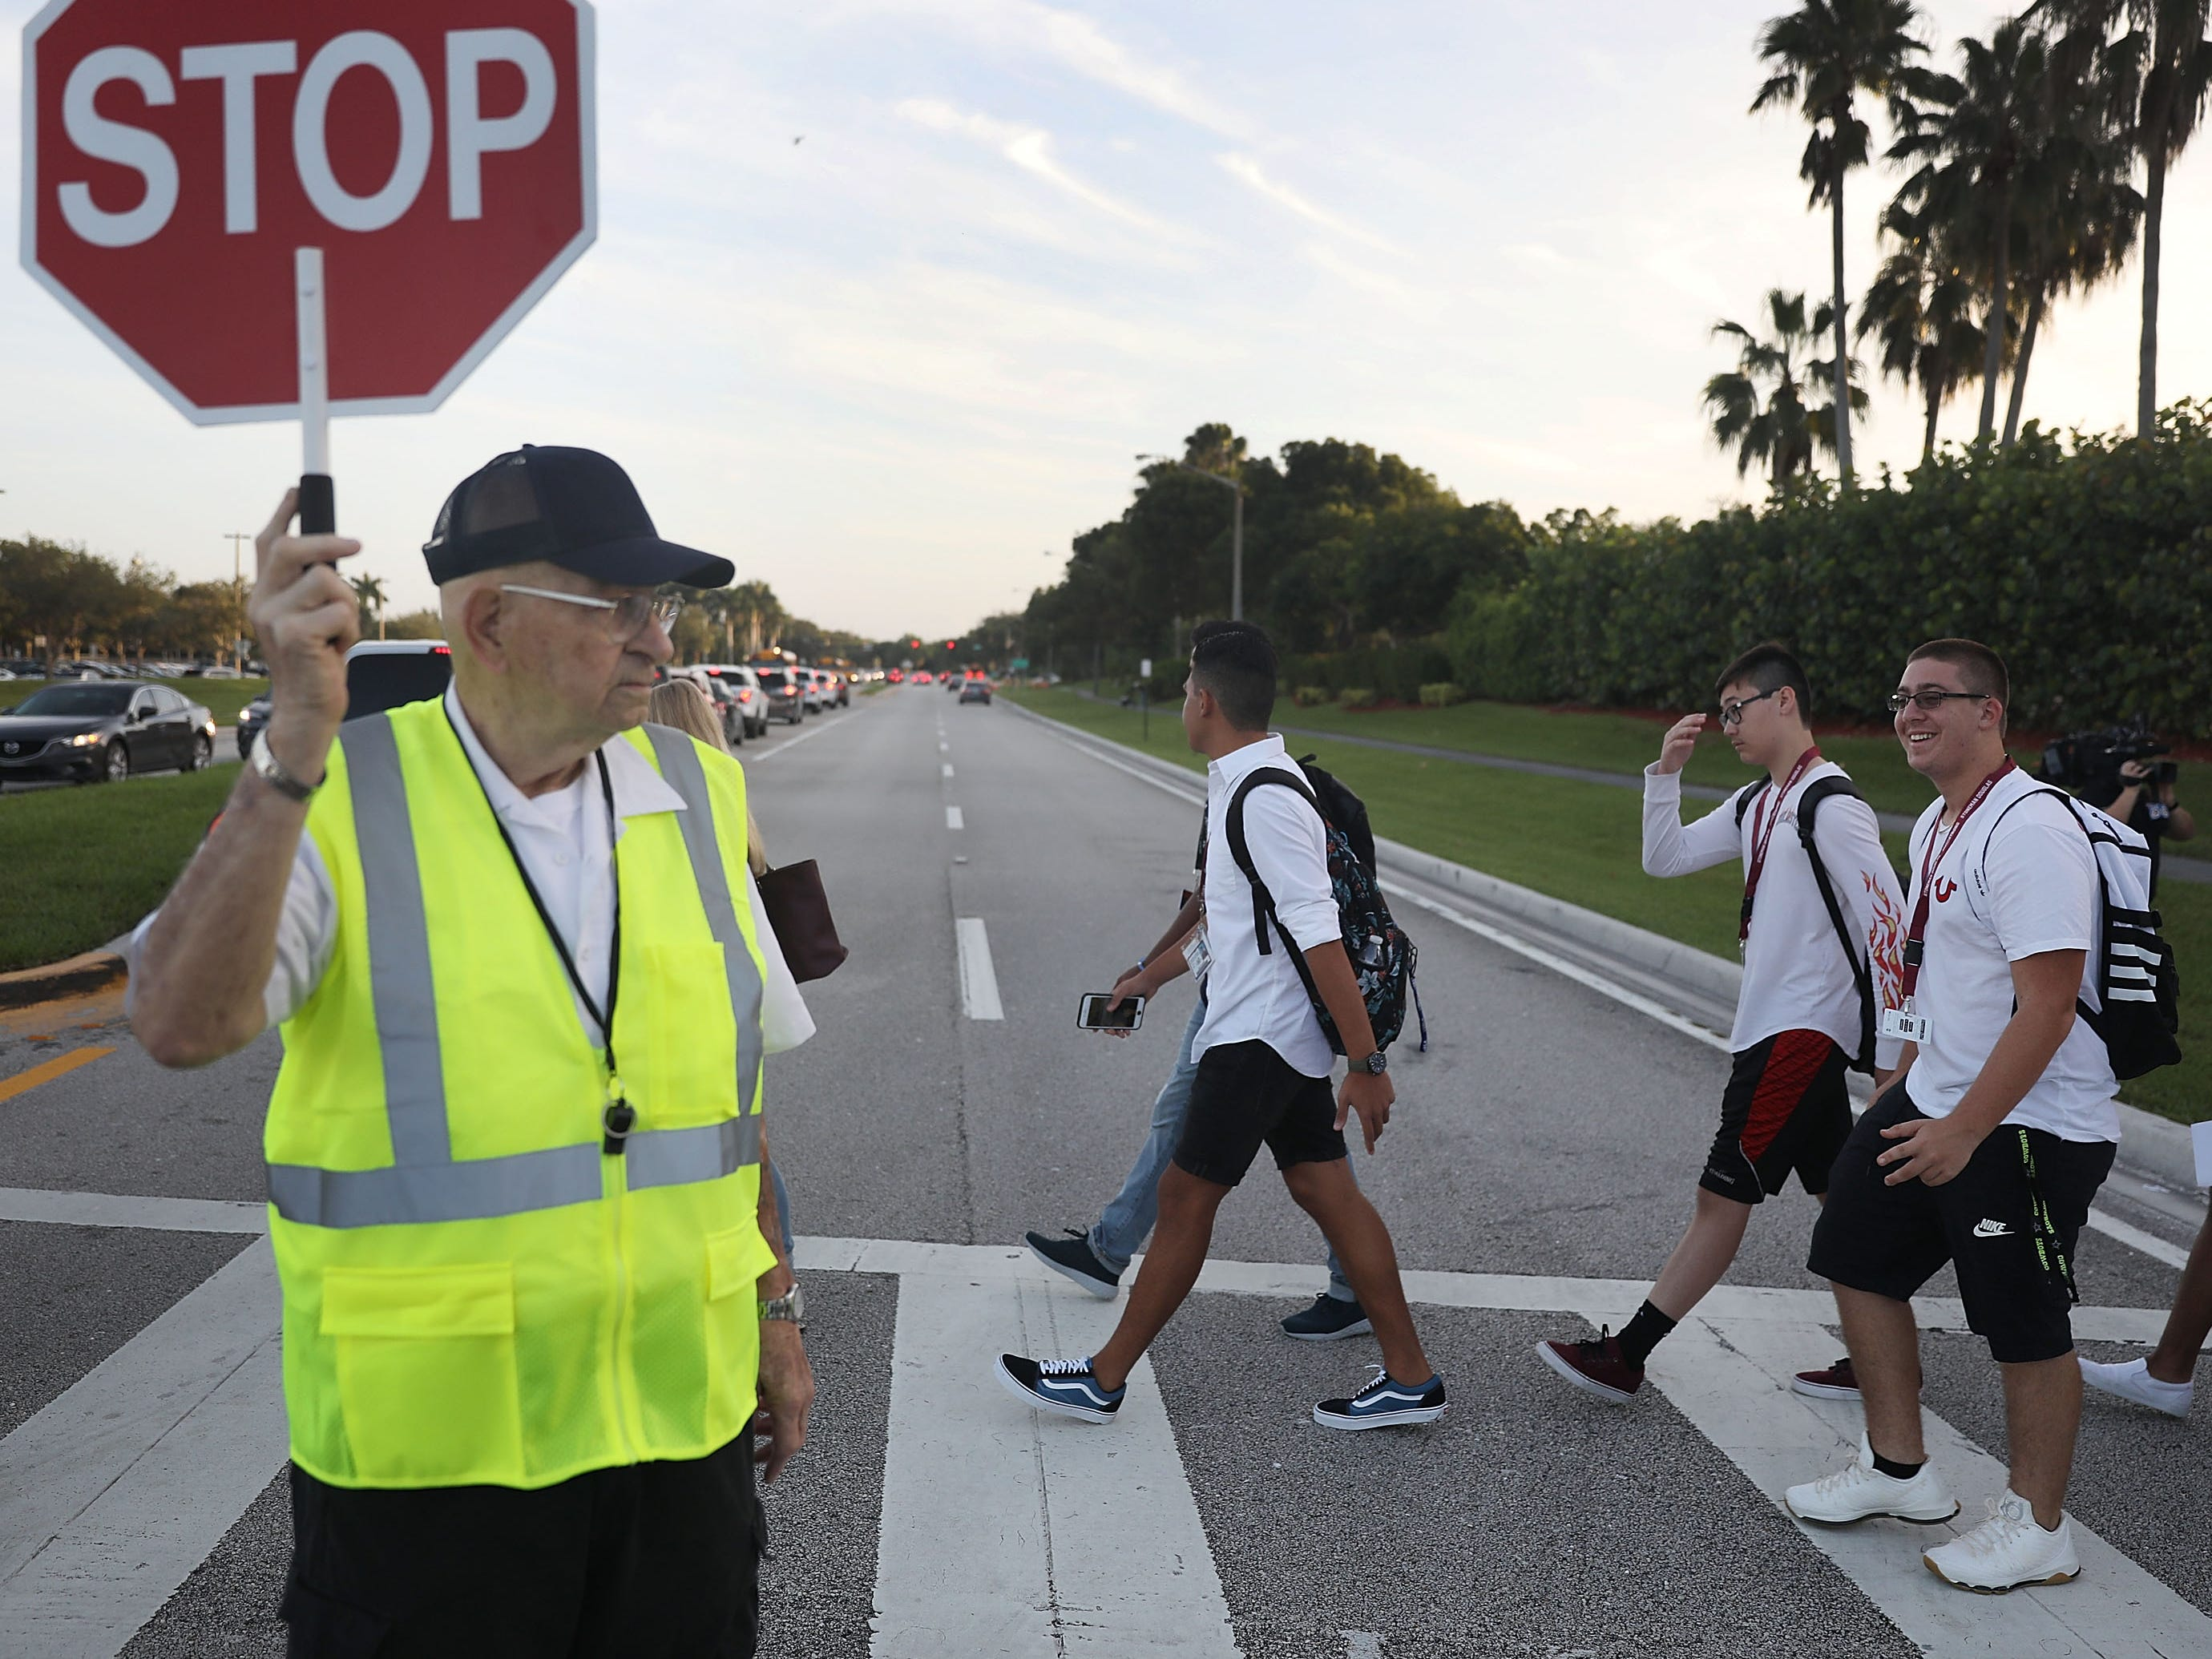 School crossing guard Tony Sorrentino helps students as they walk to Marjory Stoneman Douglas High School on the first day of school on Aug. 15, 2018 in Parkland, Fla.